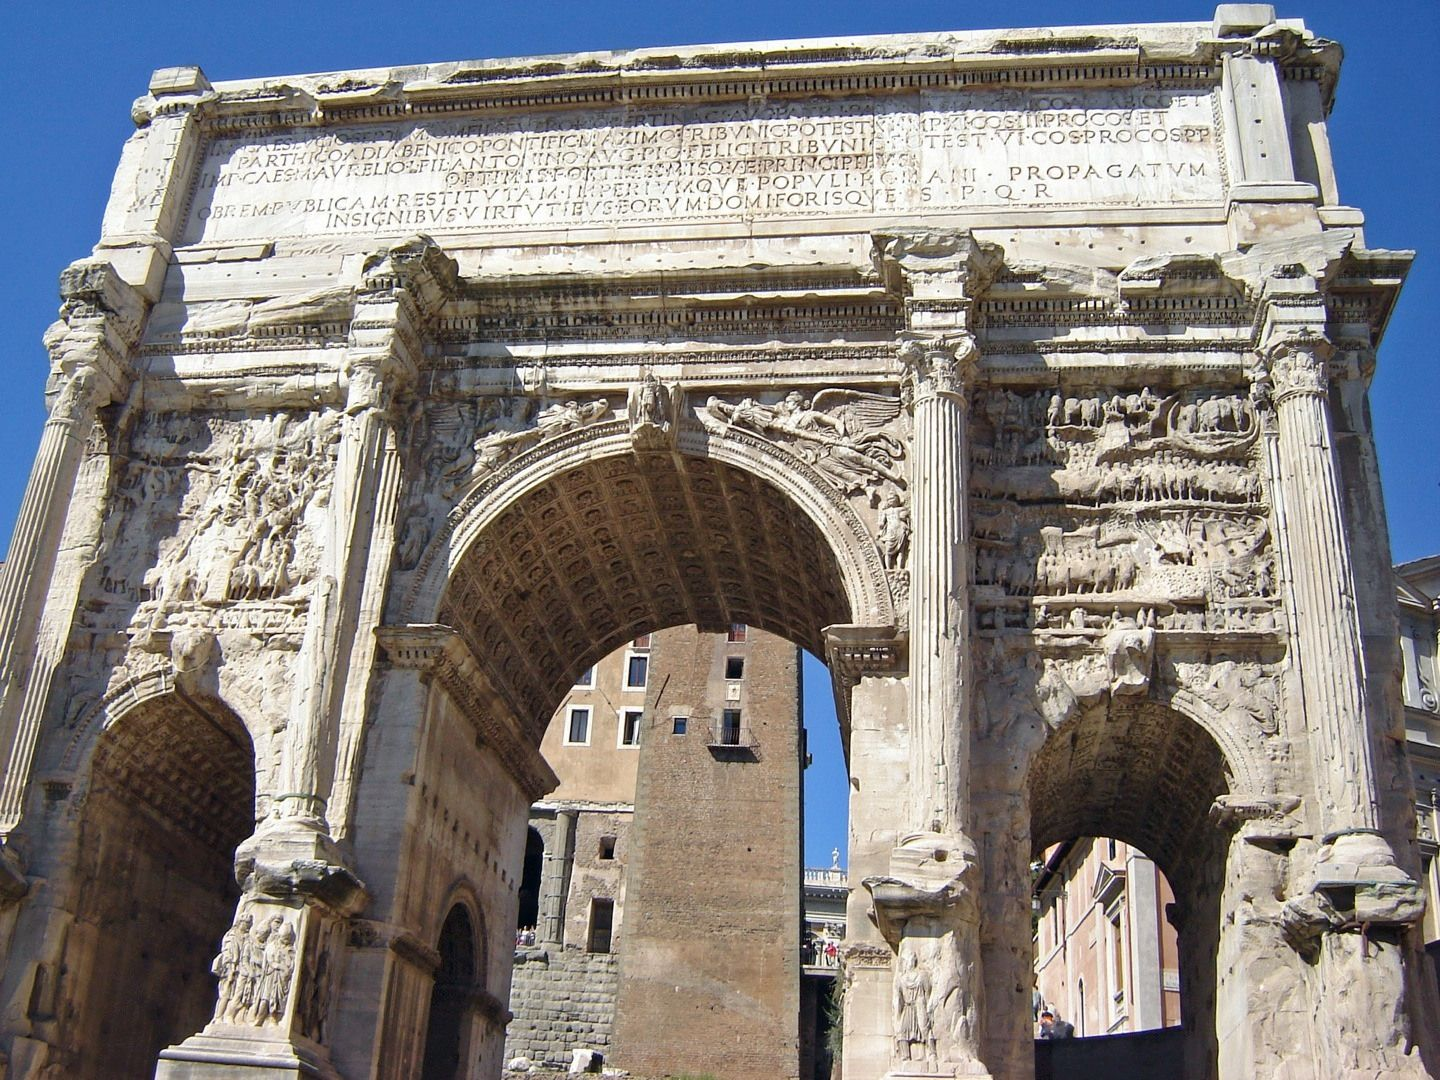 a report on the arch of septimius severus in rome By the time of a dragon among the eagles, when emperor septimius severus and his legions came into egypt at the conclusion of the parthian campaign around ad 199, alexandria was once again a metropolis to rival rome.